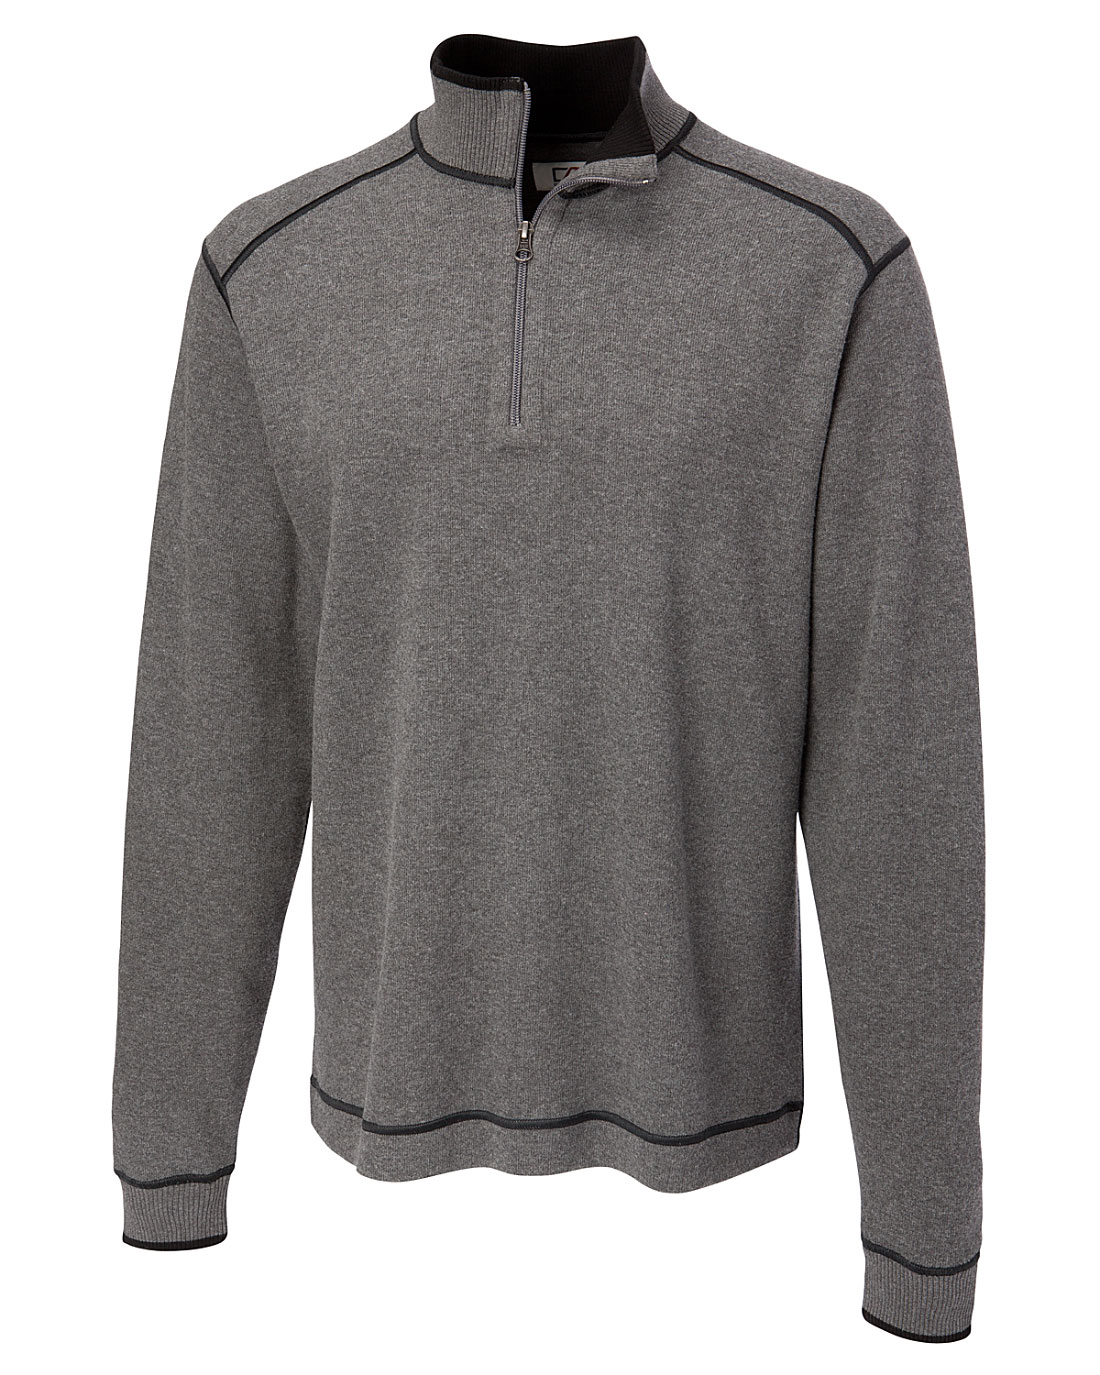 Mens Cutter and Buck Overtime Half Zip In Big and Tall Sizes